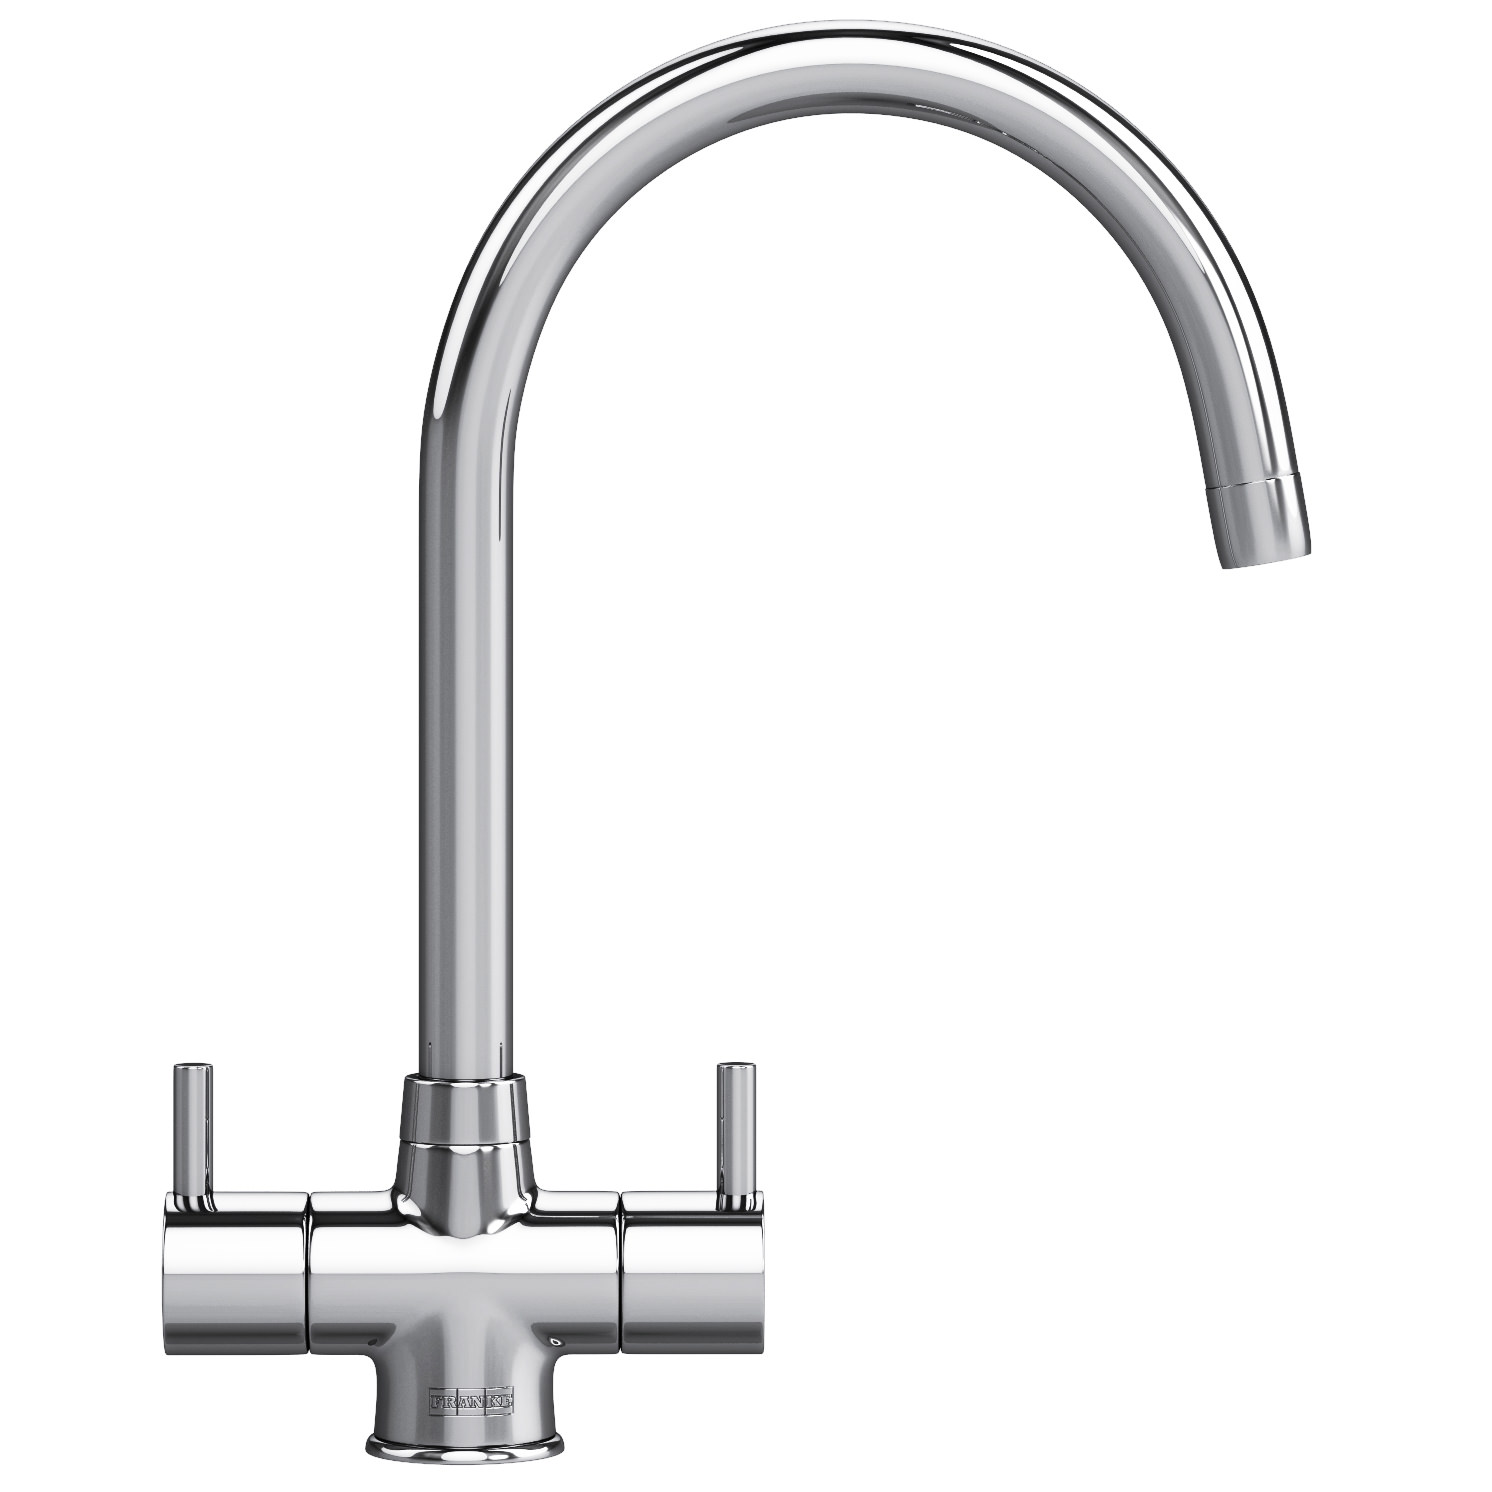 Franke Sinks And Taps : ... taps kitchen mixer taps franke athena kitchen sink mixer tap chrome